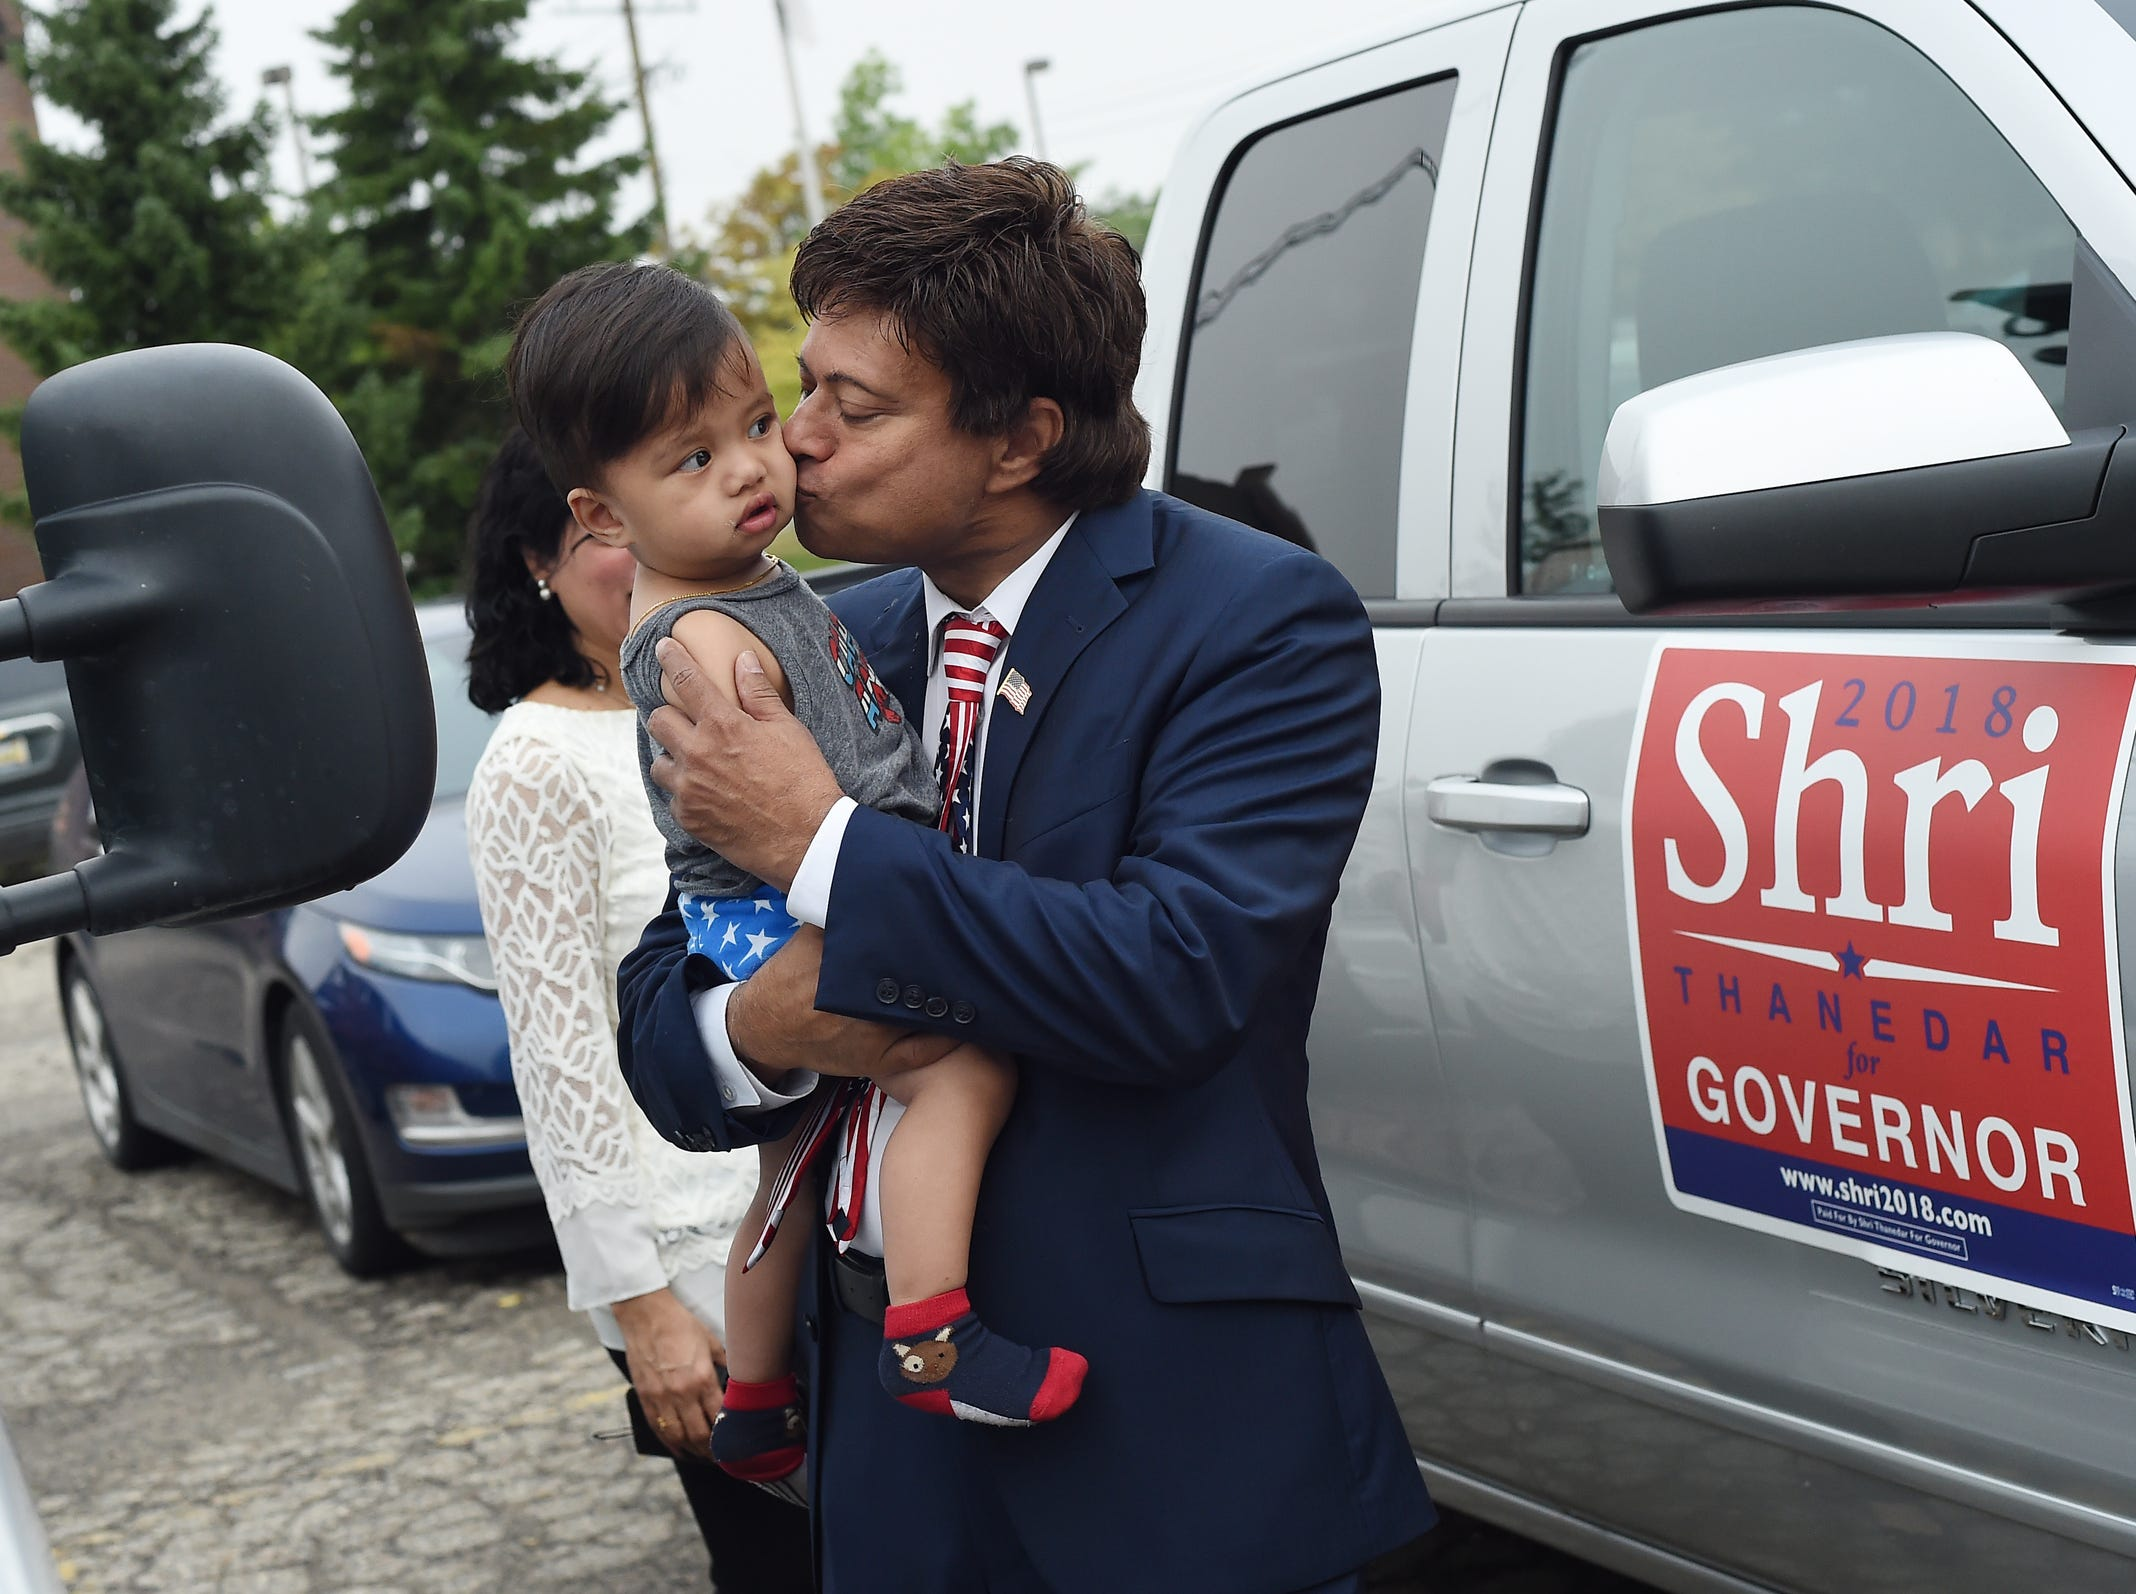 Democratic gubernatorial candidate Shri Thanedar kisses his 18-month-old grandson Kai Thanedar, of San Fransisco, while in the parking lot after casting his ballot in the Michigan primary election at the Pittsfield Community Center in Pittsfield Township on Tuesday, August 7, 2018.